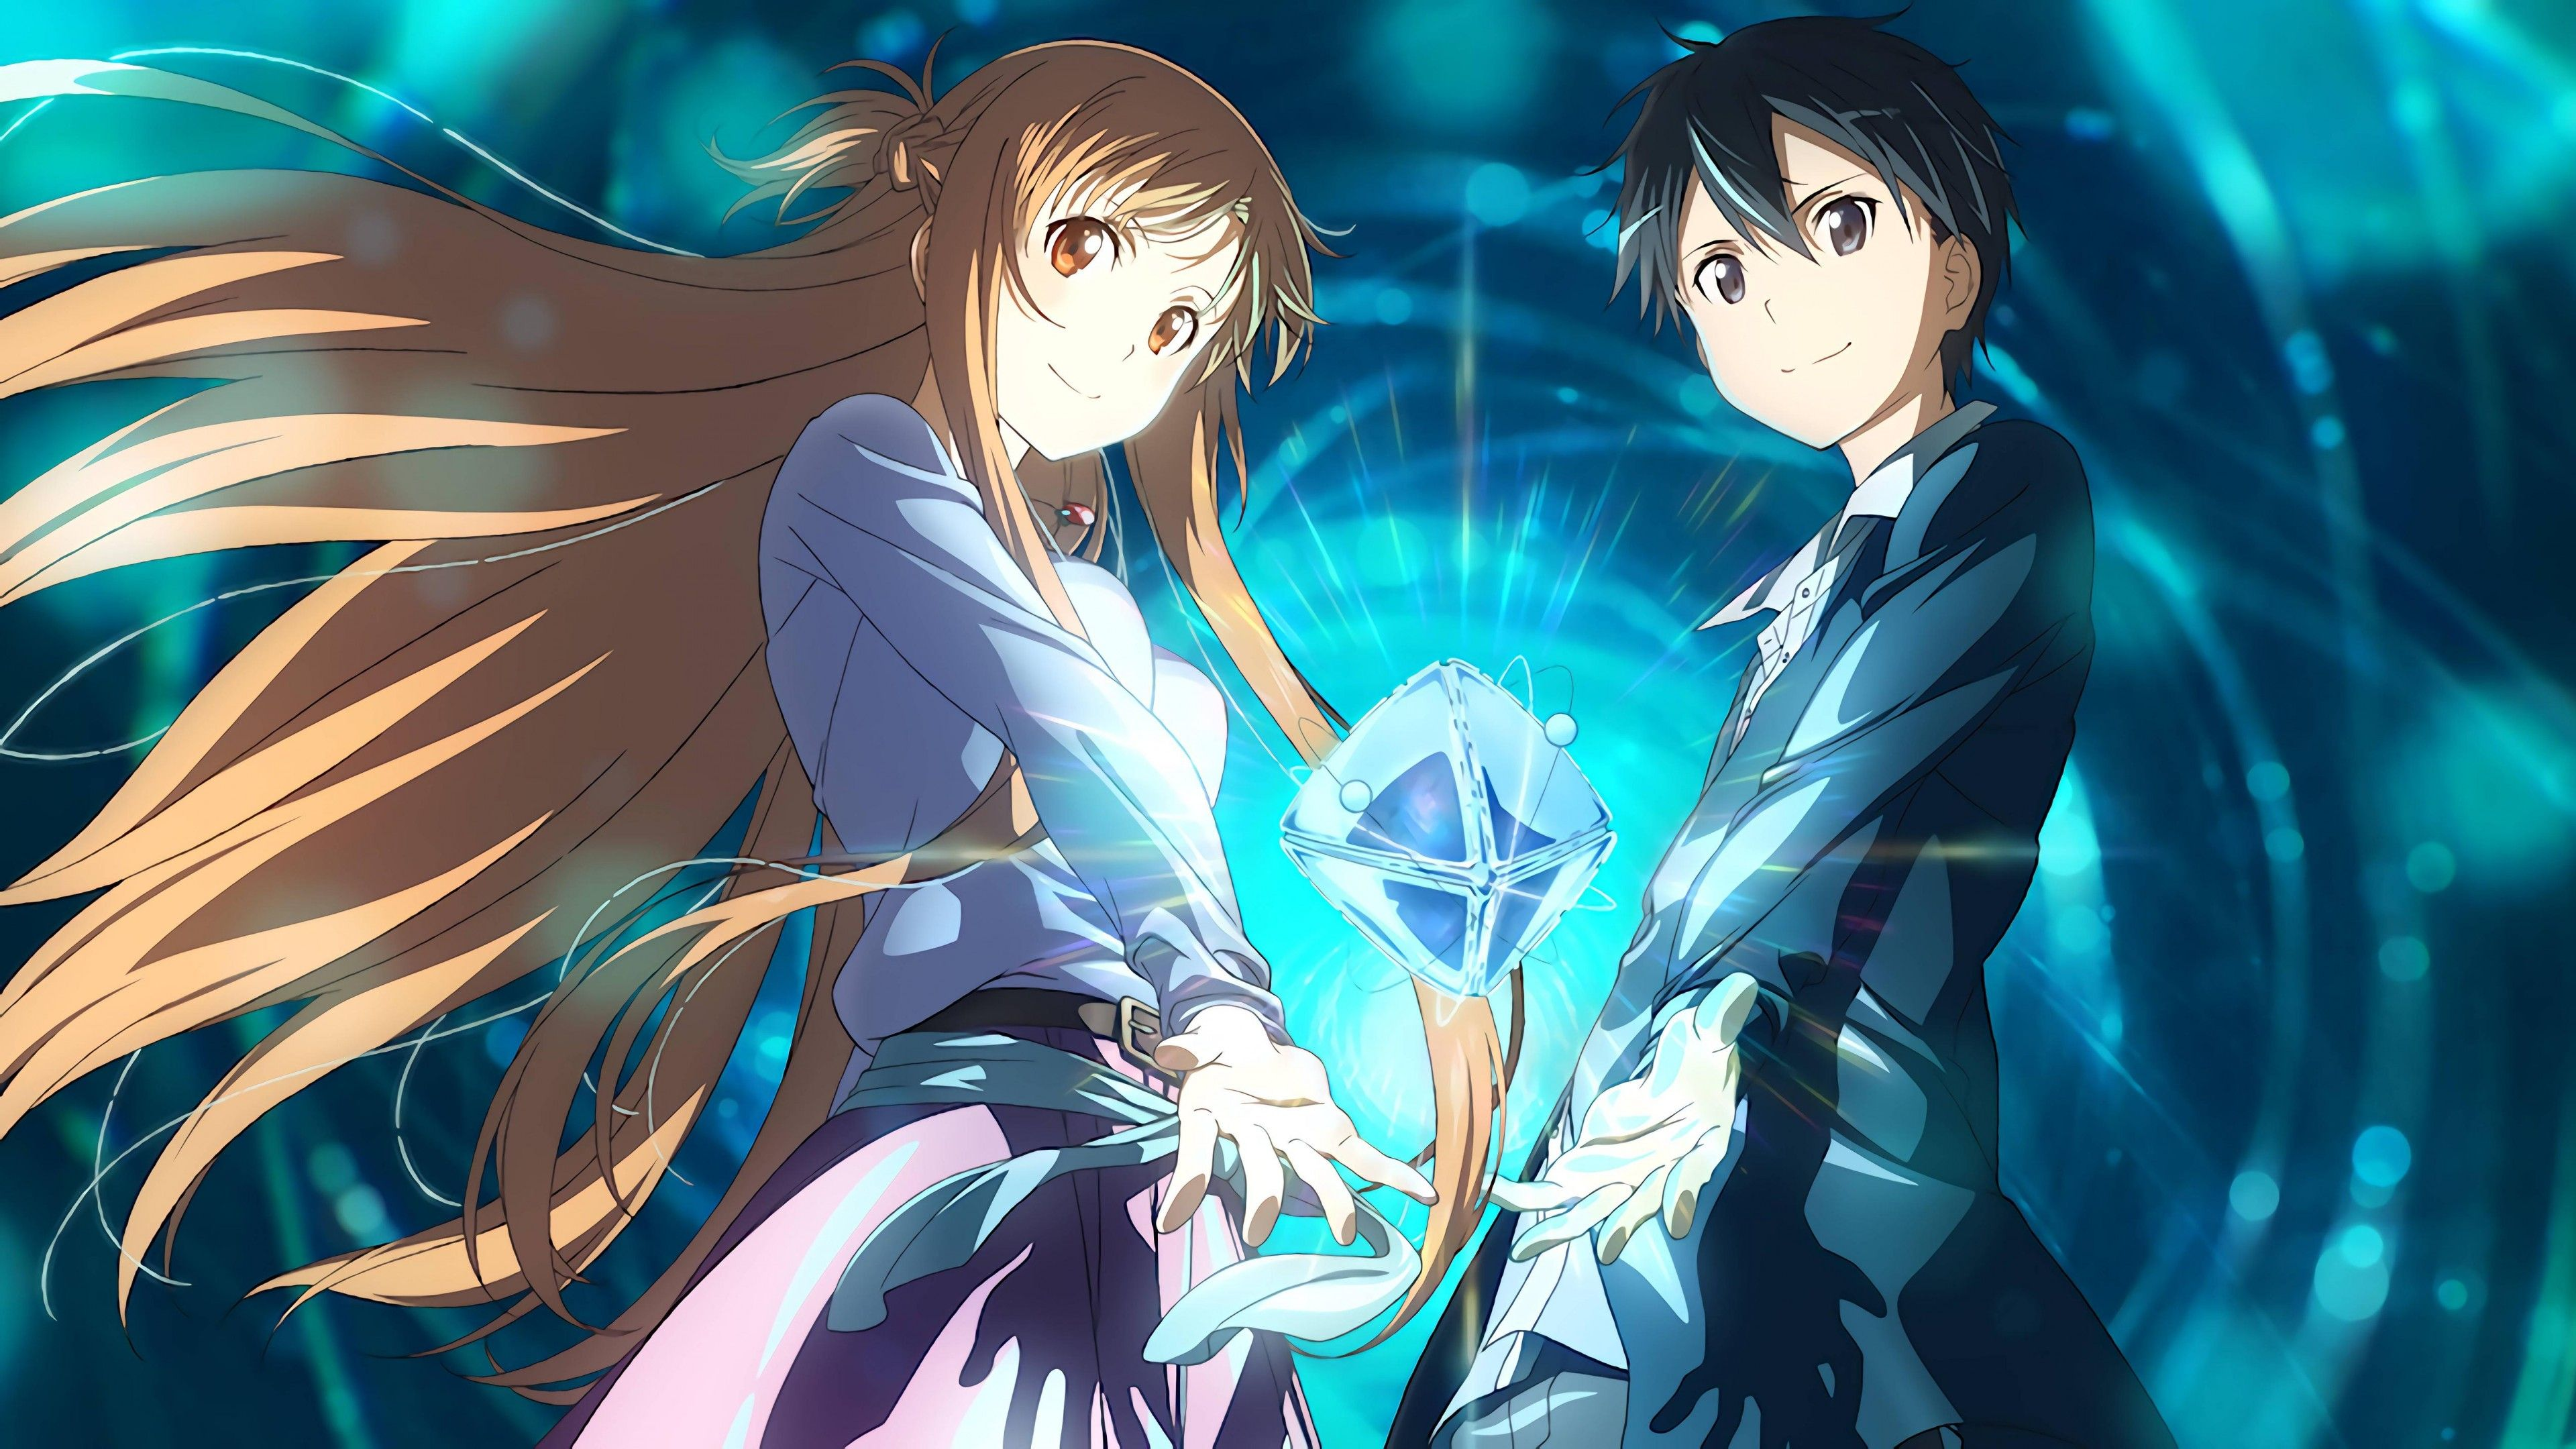 Anime Couple 4k Wallpapers - Wallpaper Cave